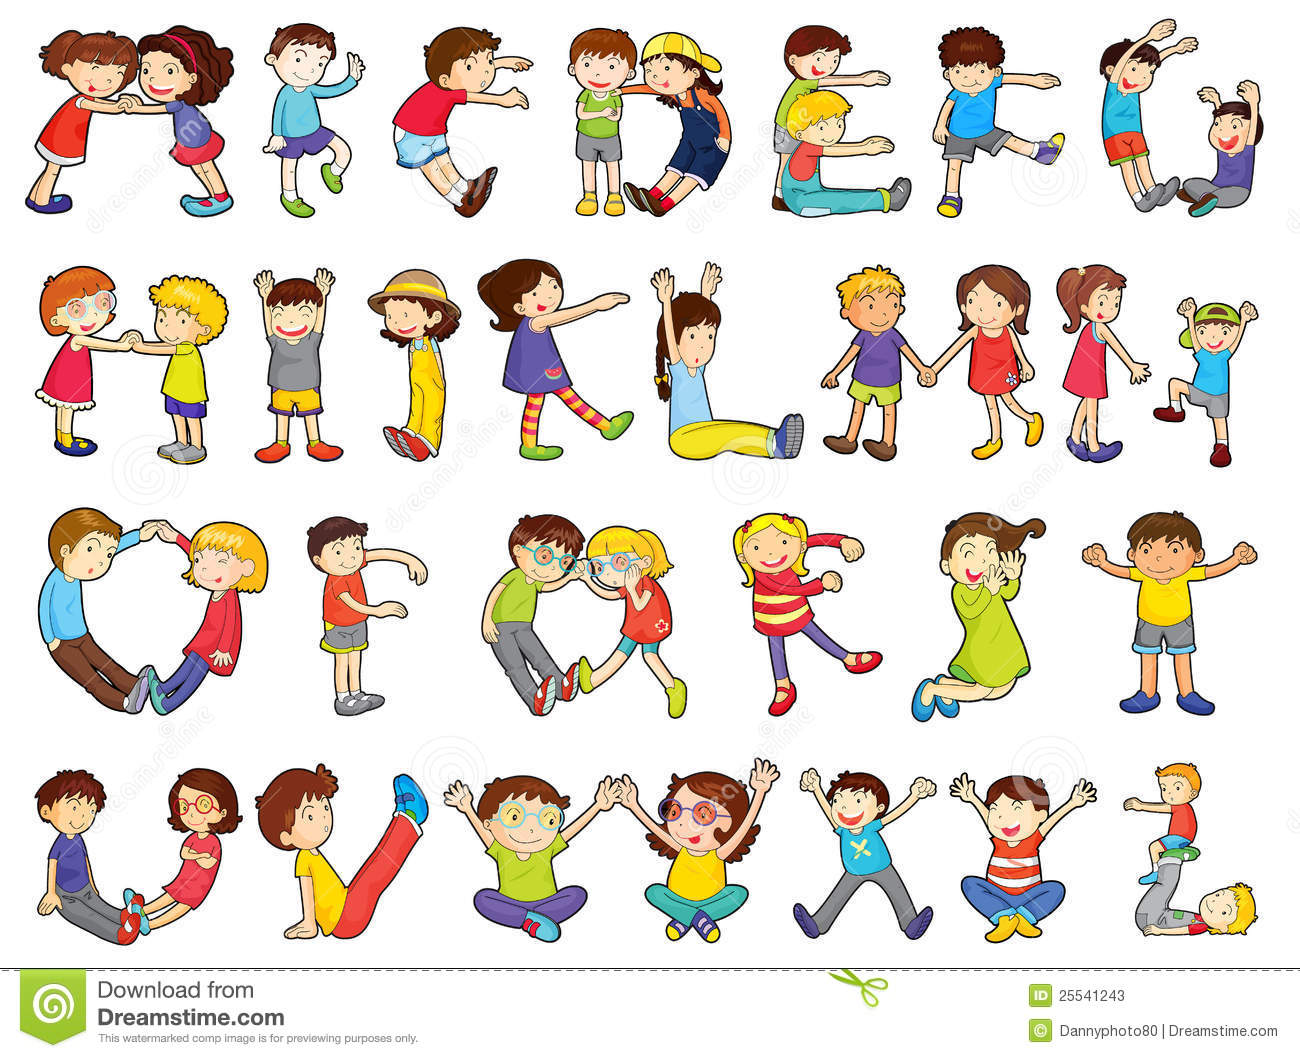 Cute Toddlers Playing Cartoon Wallpaper Alphabets In Kids Activities Stock Photos Image 25541243